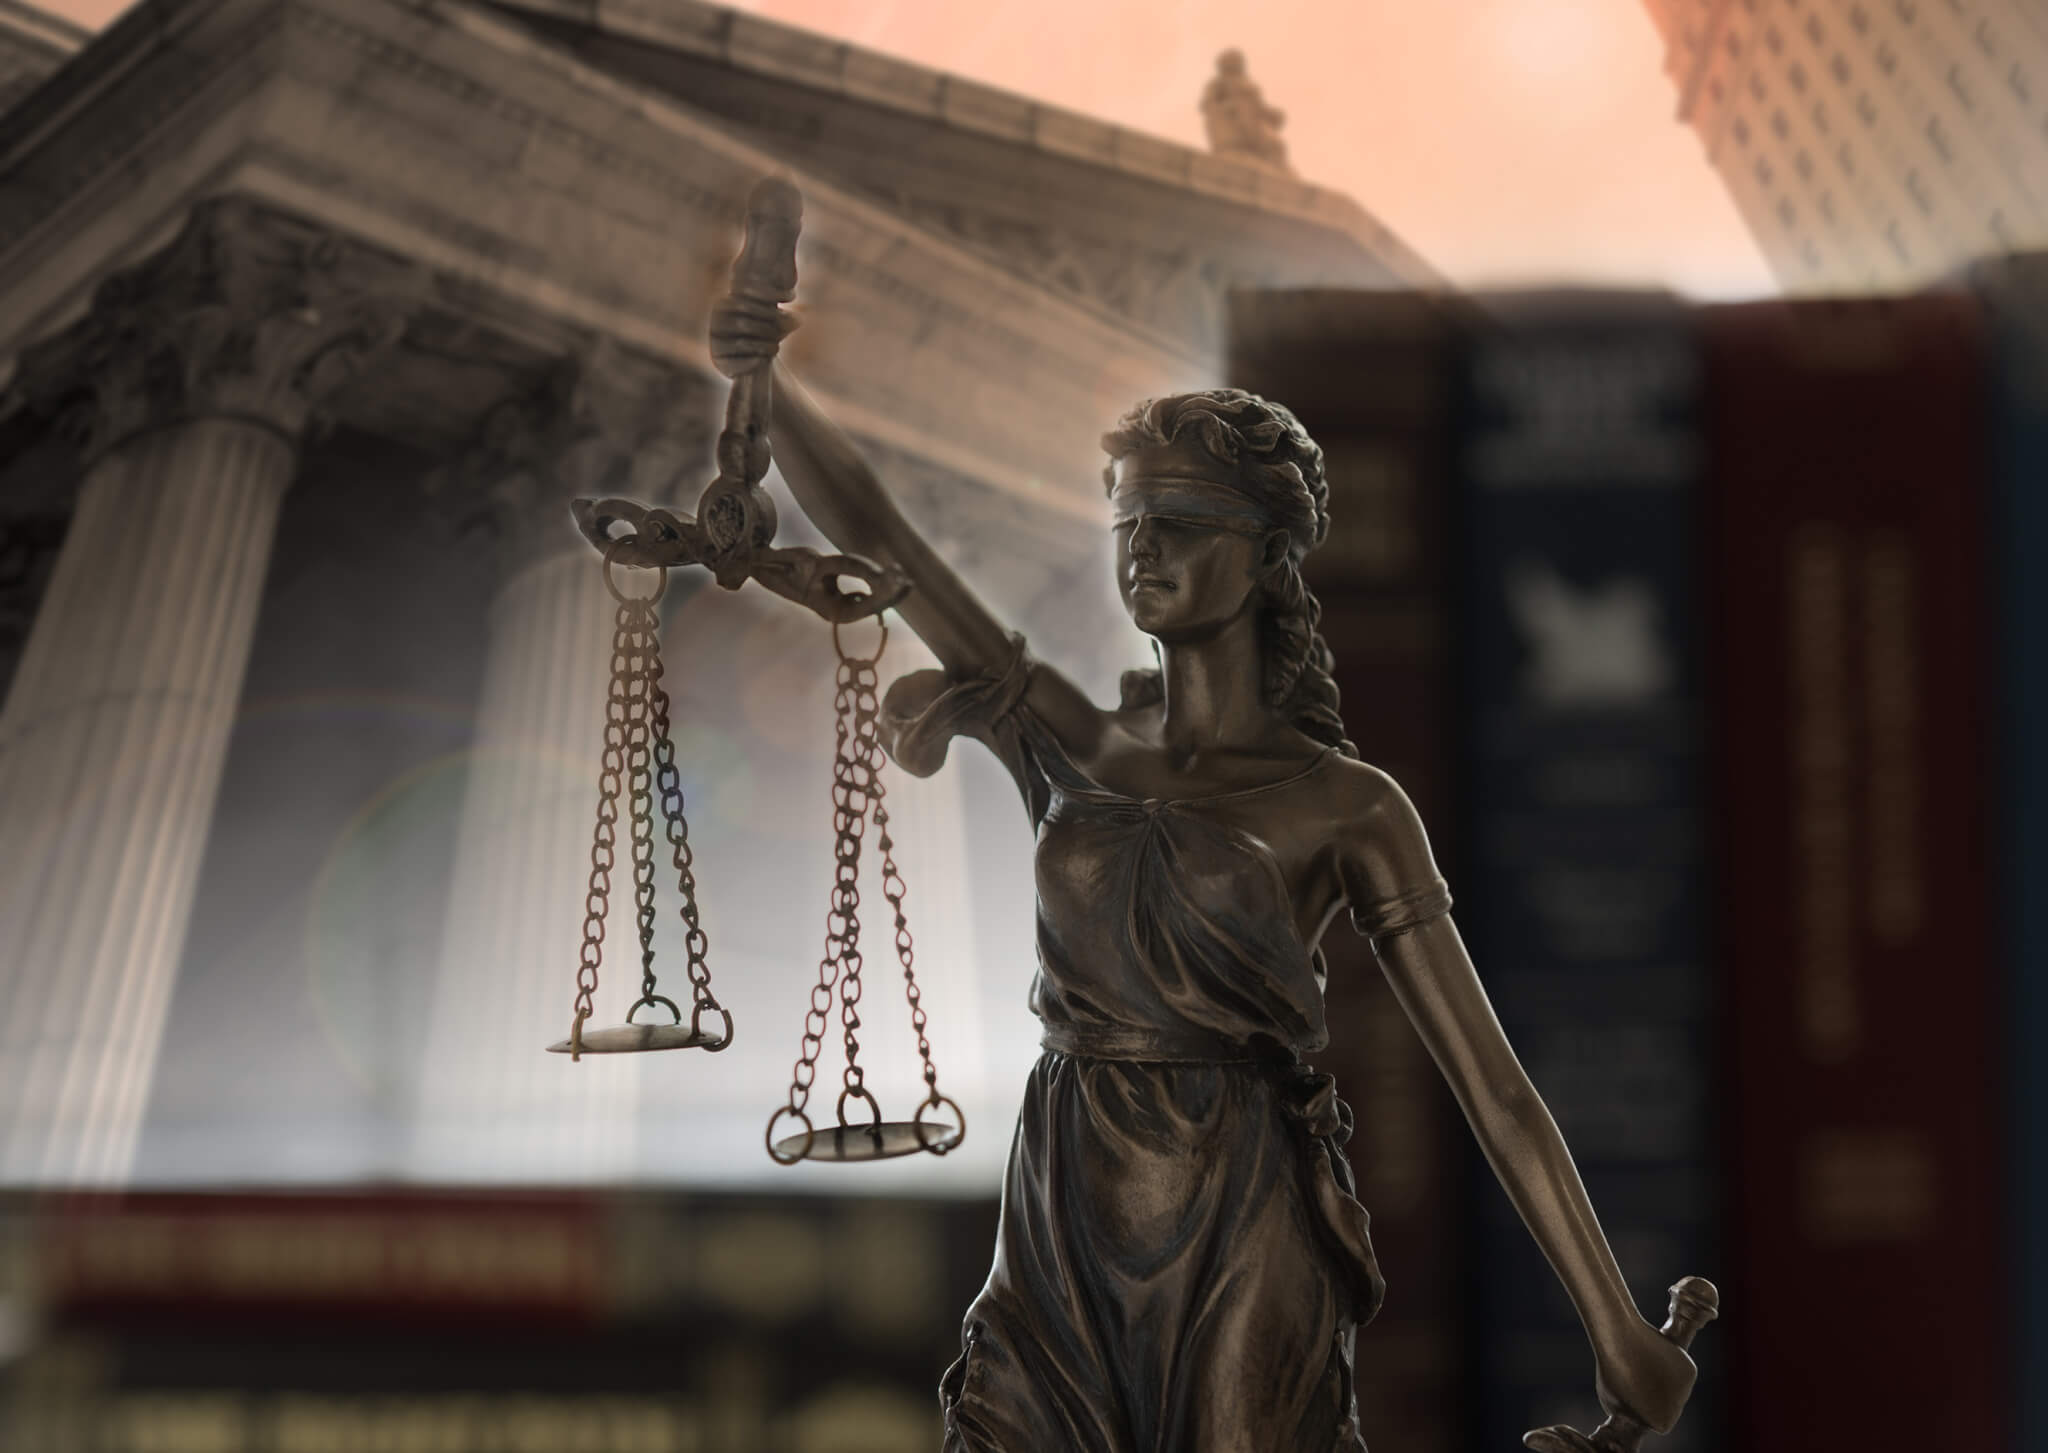 Attorneys Fight for Constitutional Rights Against Tyranny